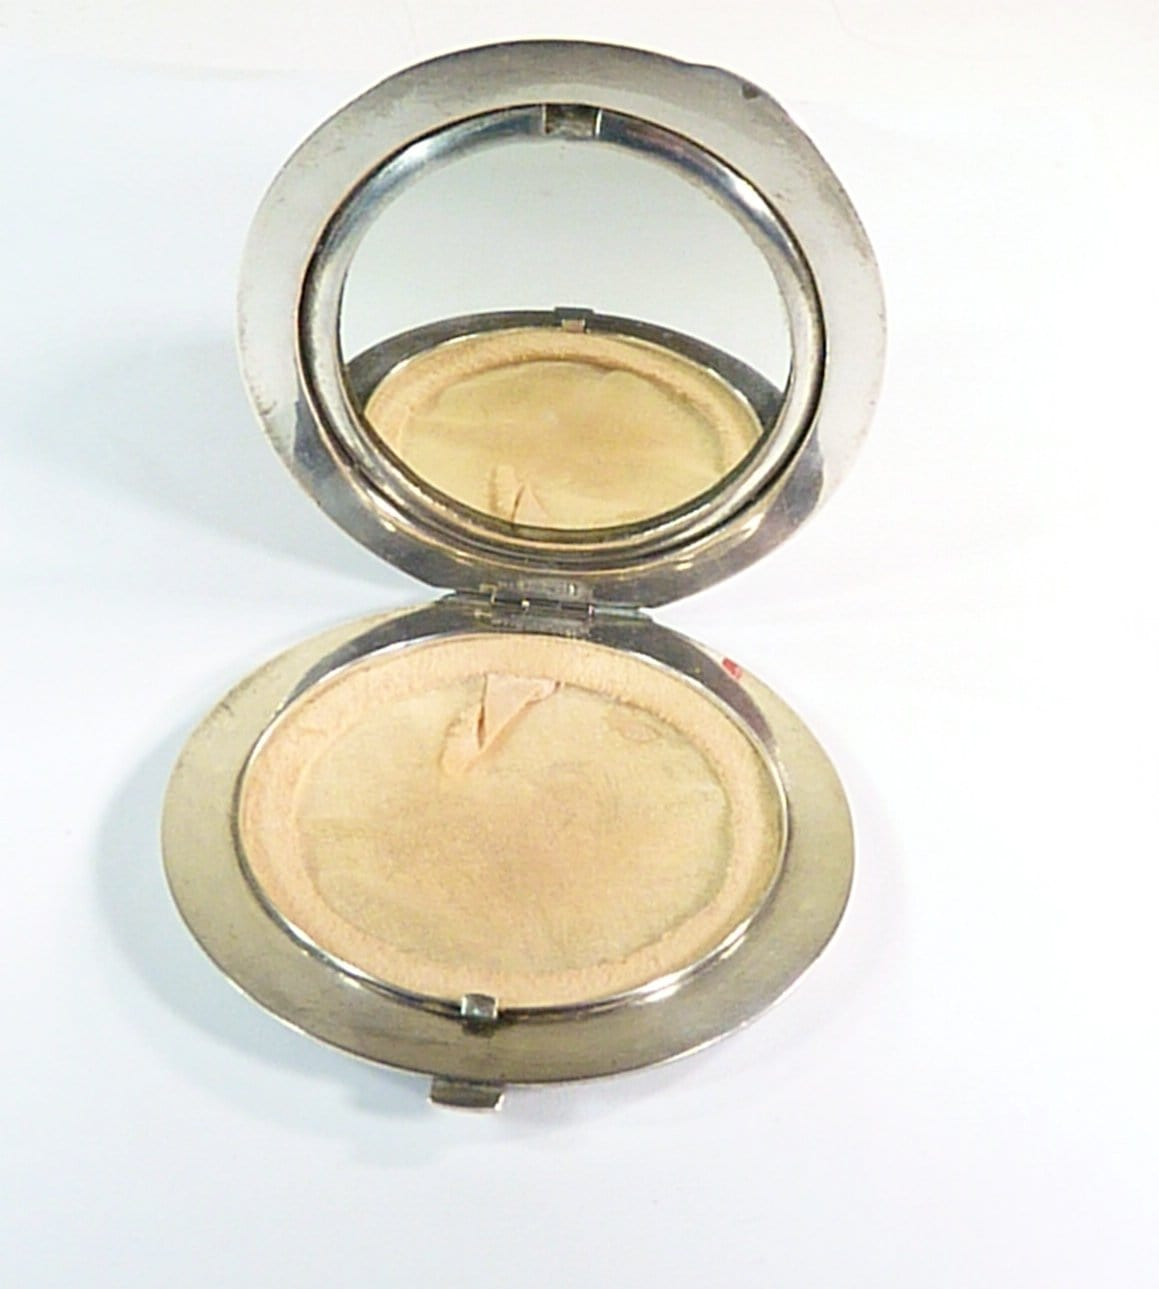 refillable vintage loose powder compact